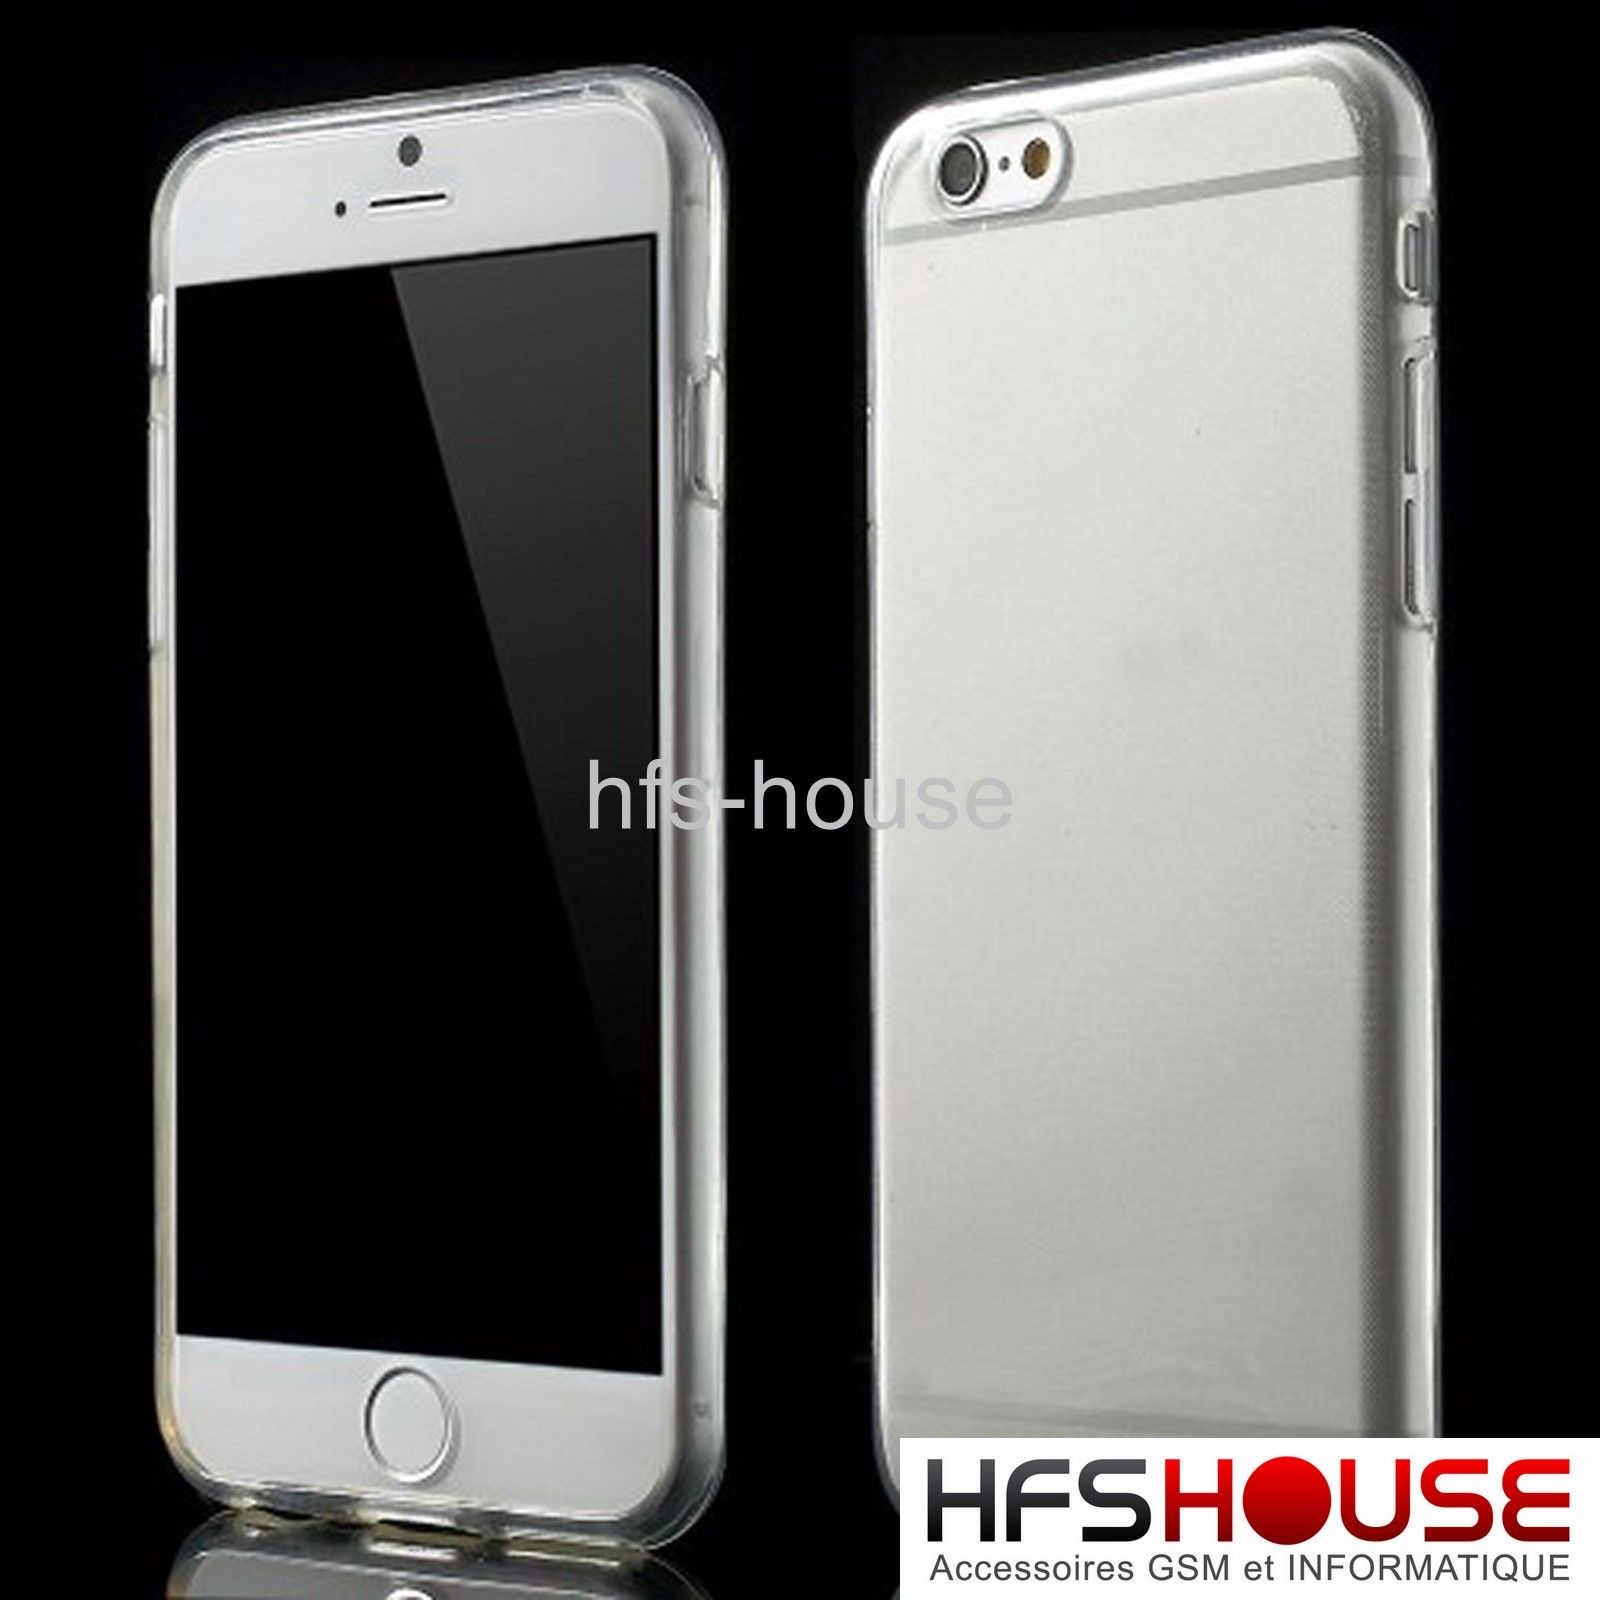 Coque housse etui pour iphone 6 6s silicone gel tpu for Housse pour iphone 6